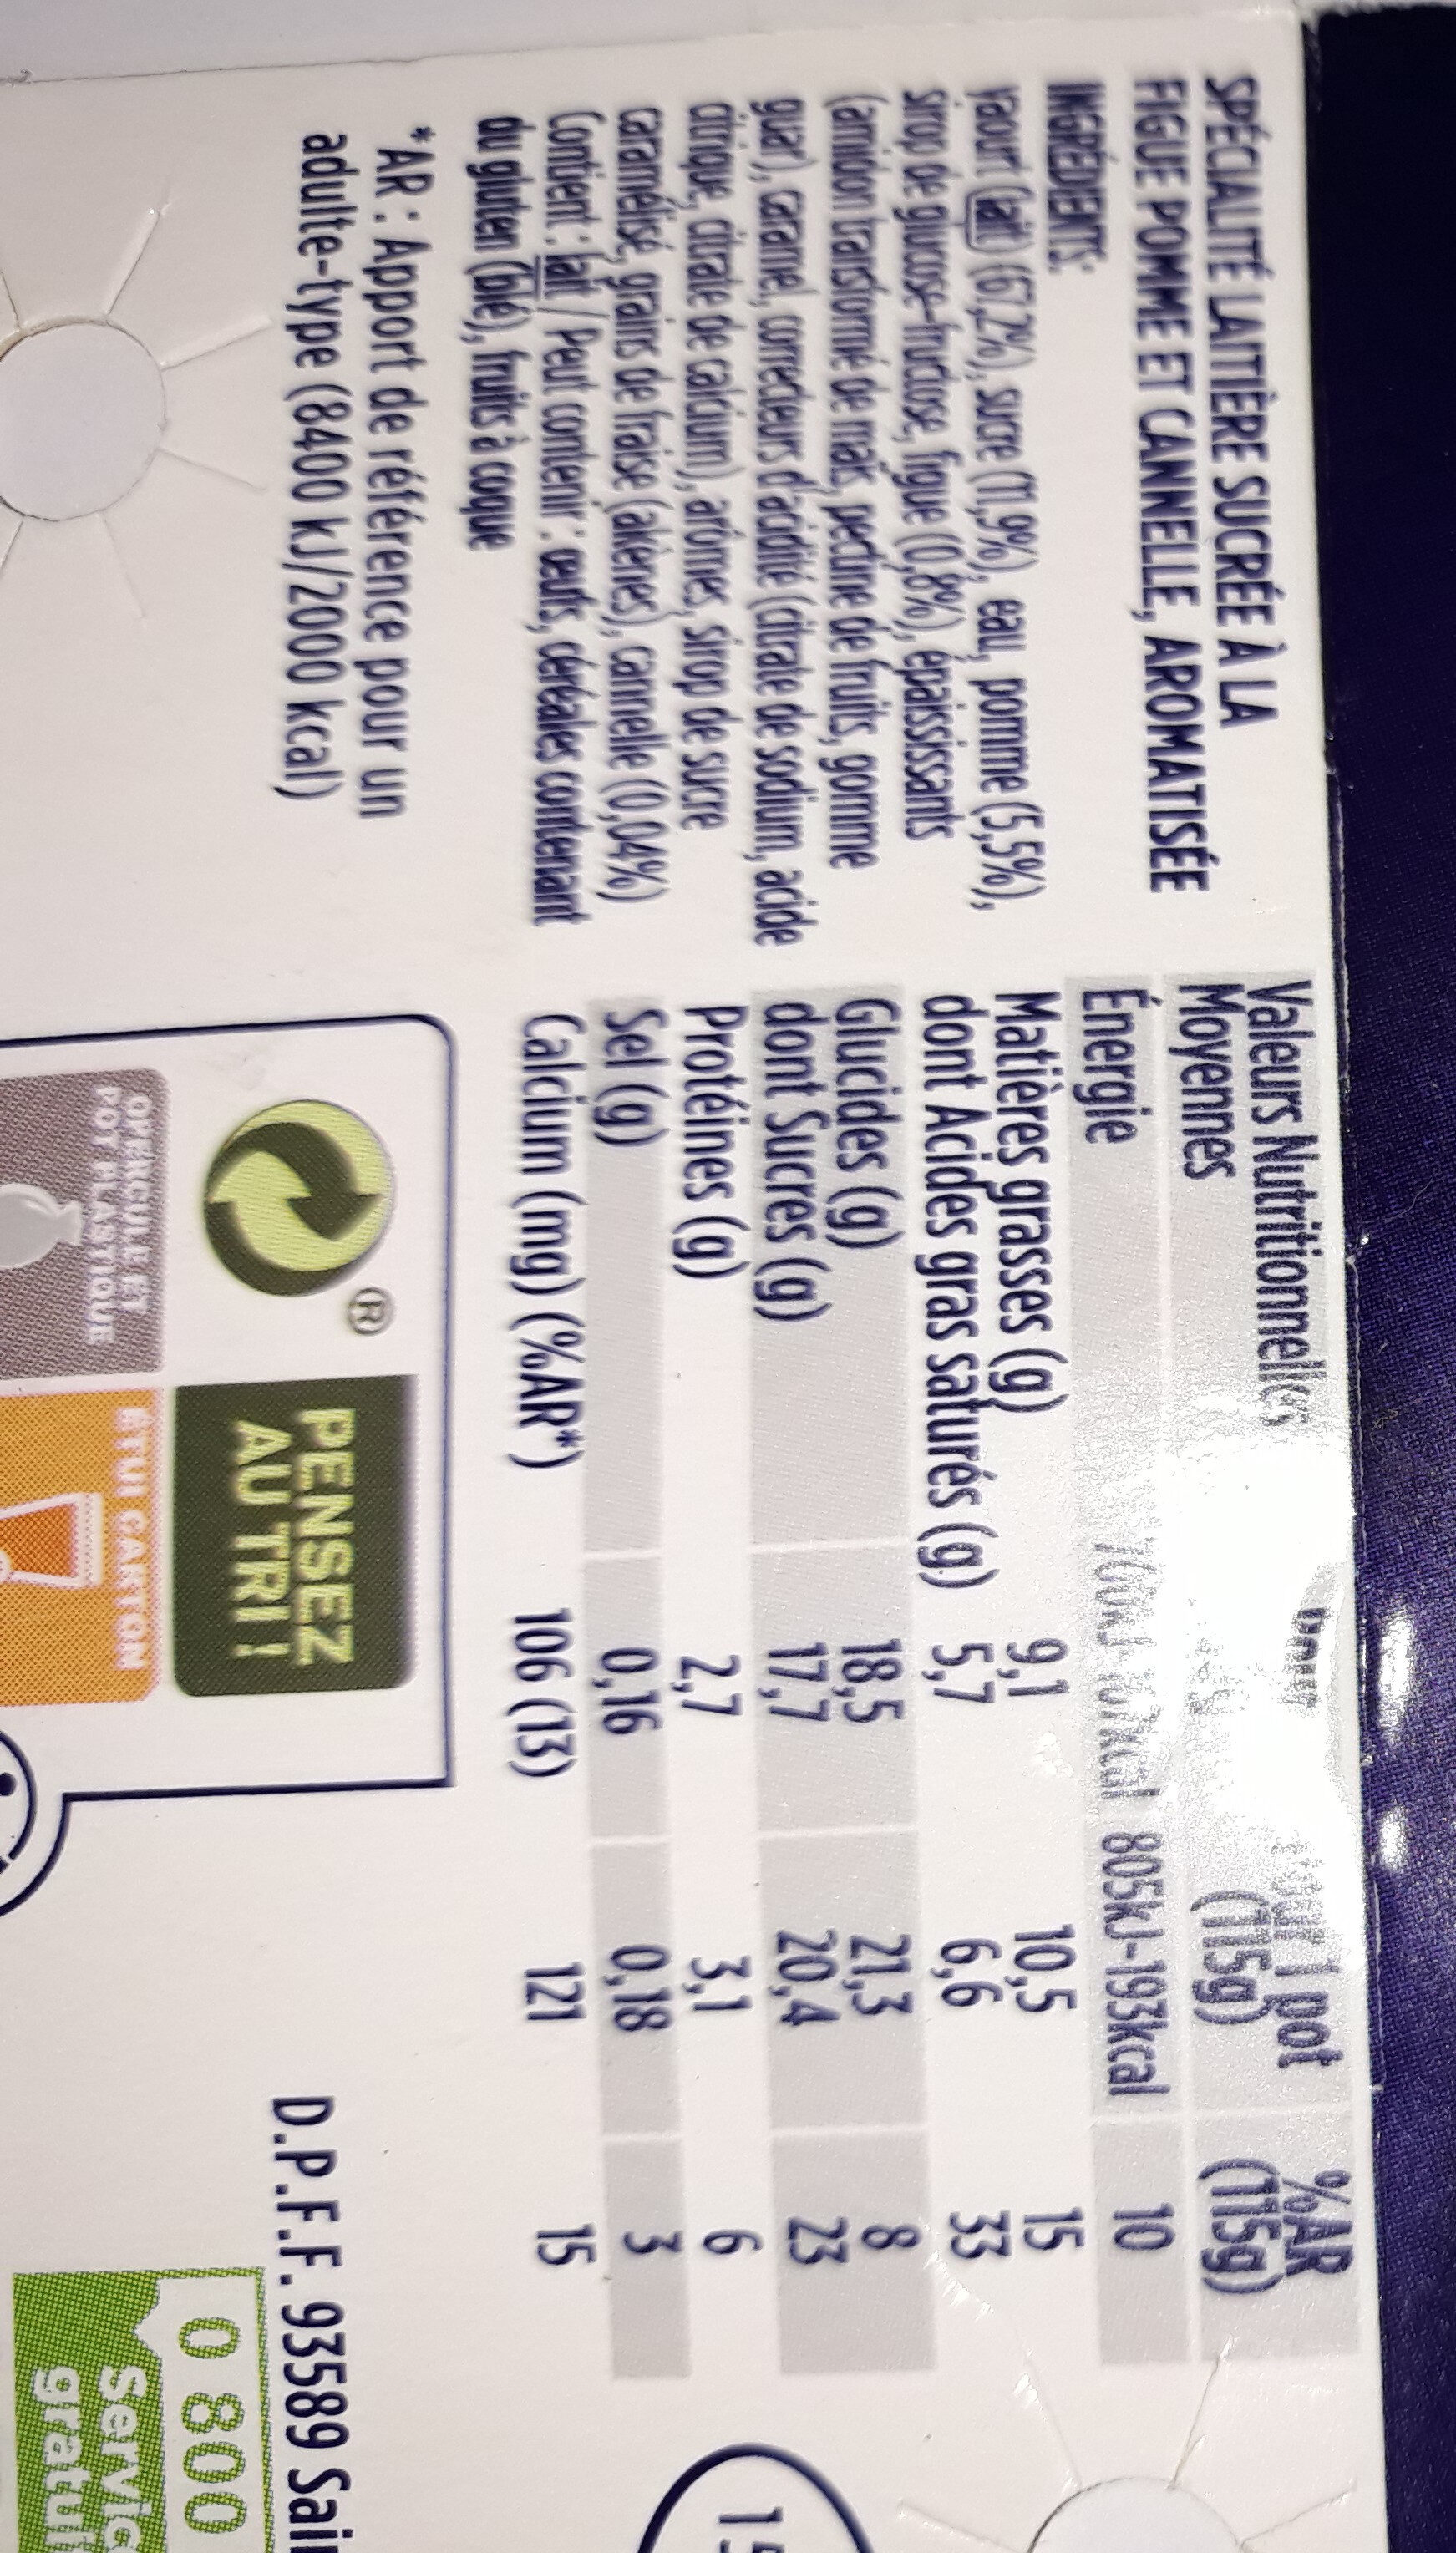 Oikos figues pomme cannelle - Nutrition facts